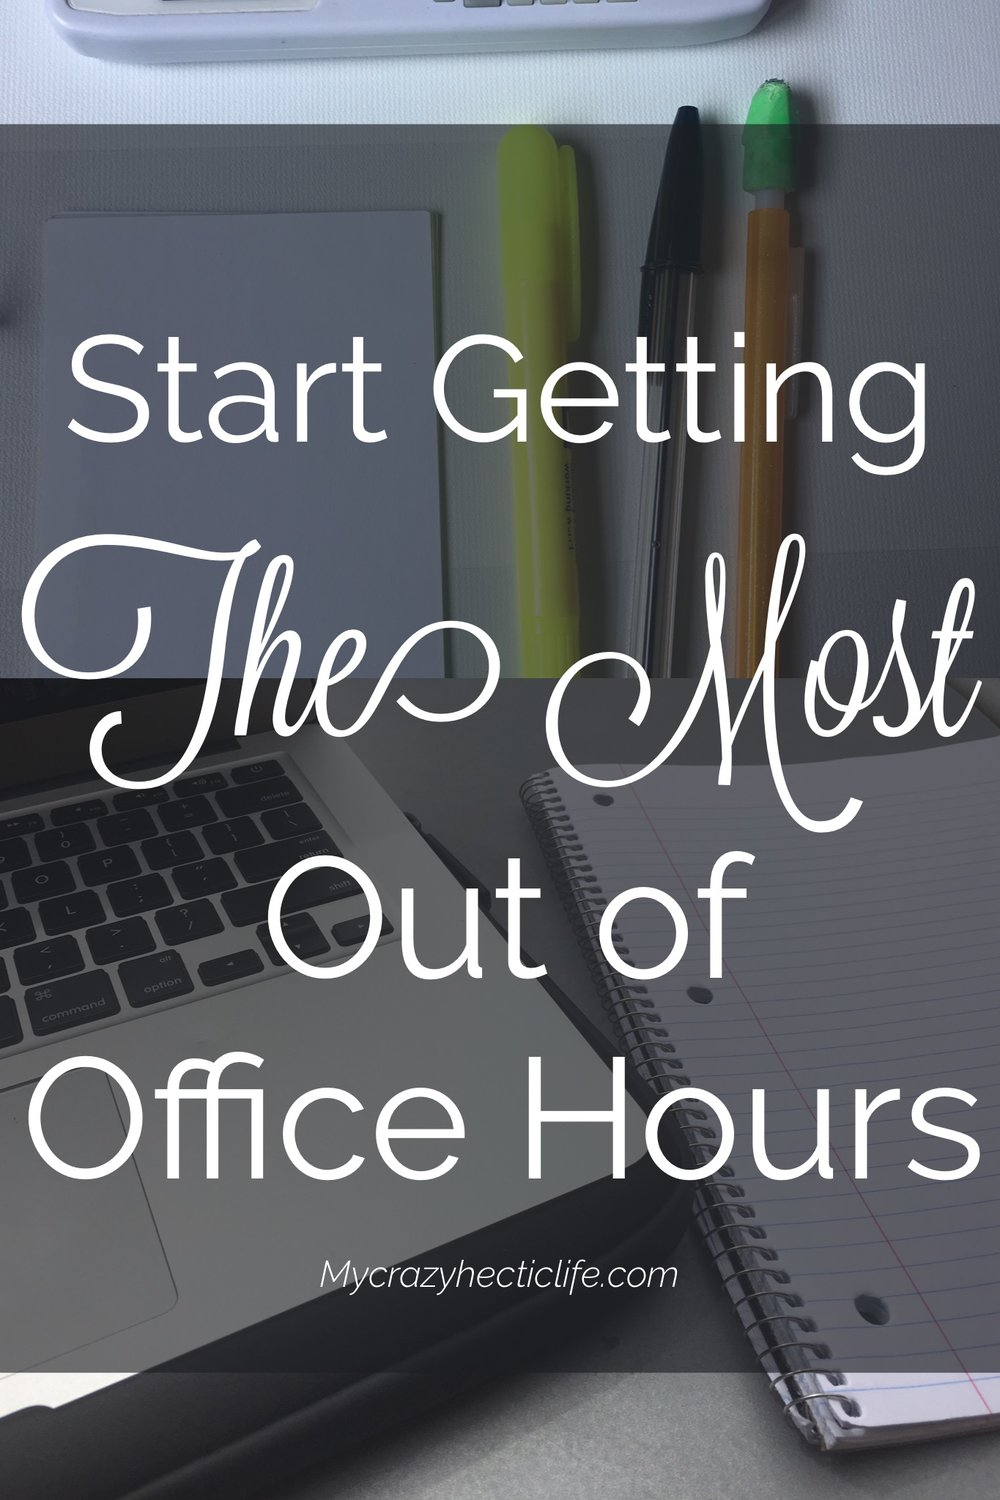 Start getting the most out out office hours with 5 easy actions.